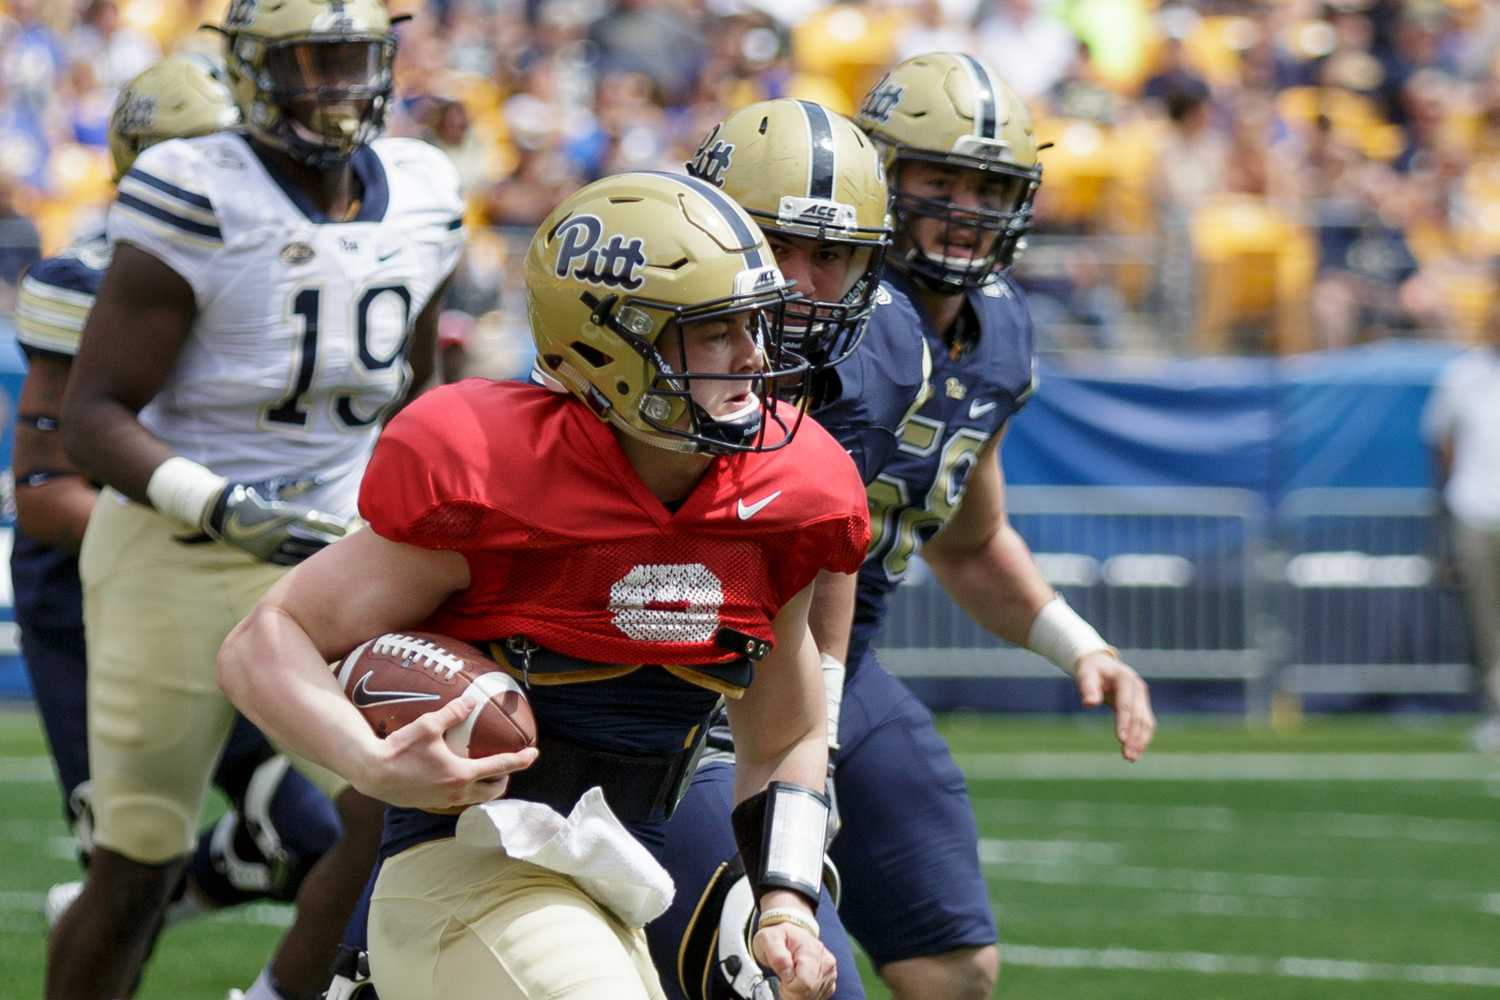 Kenny Pickett completed 13 of 23 passes for 140 yards and an interception in 2018's Blue and Gold Spring Game. (Photo by Thomas Yang   Visual Editor)